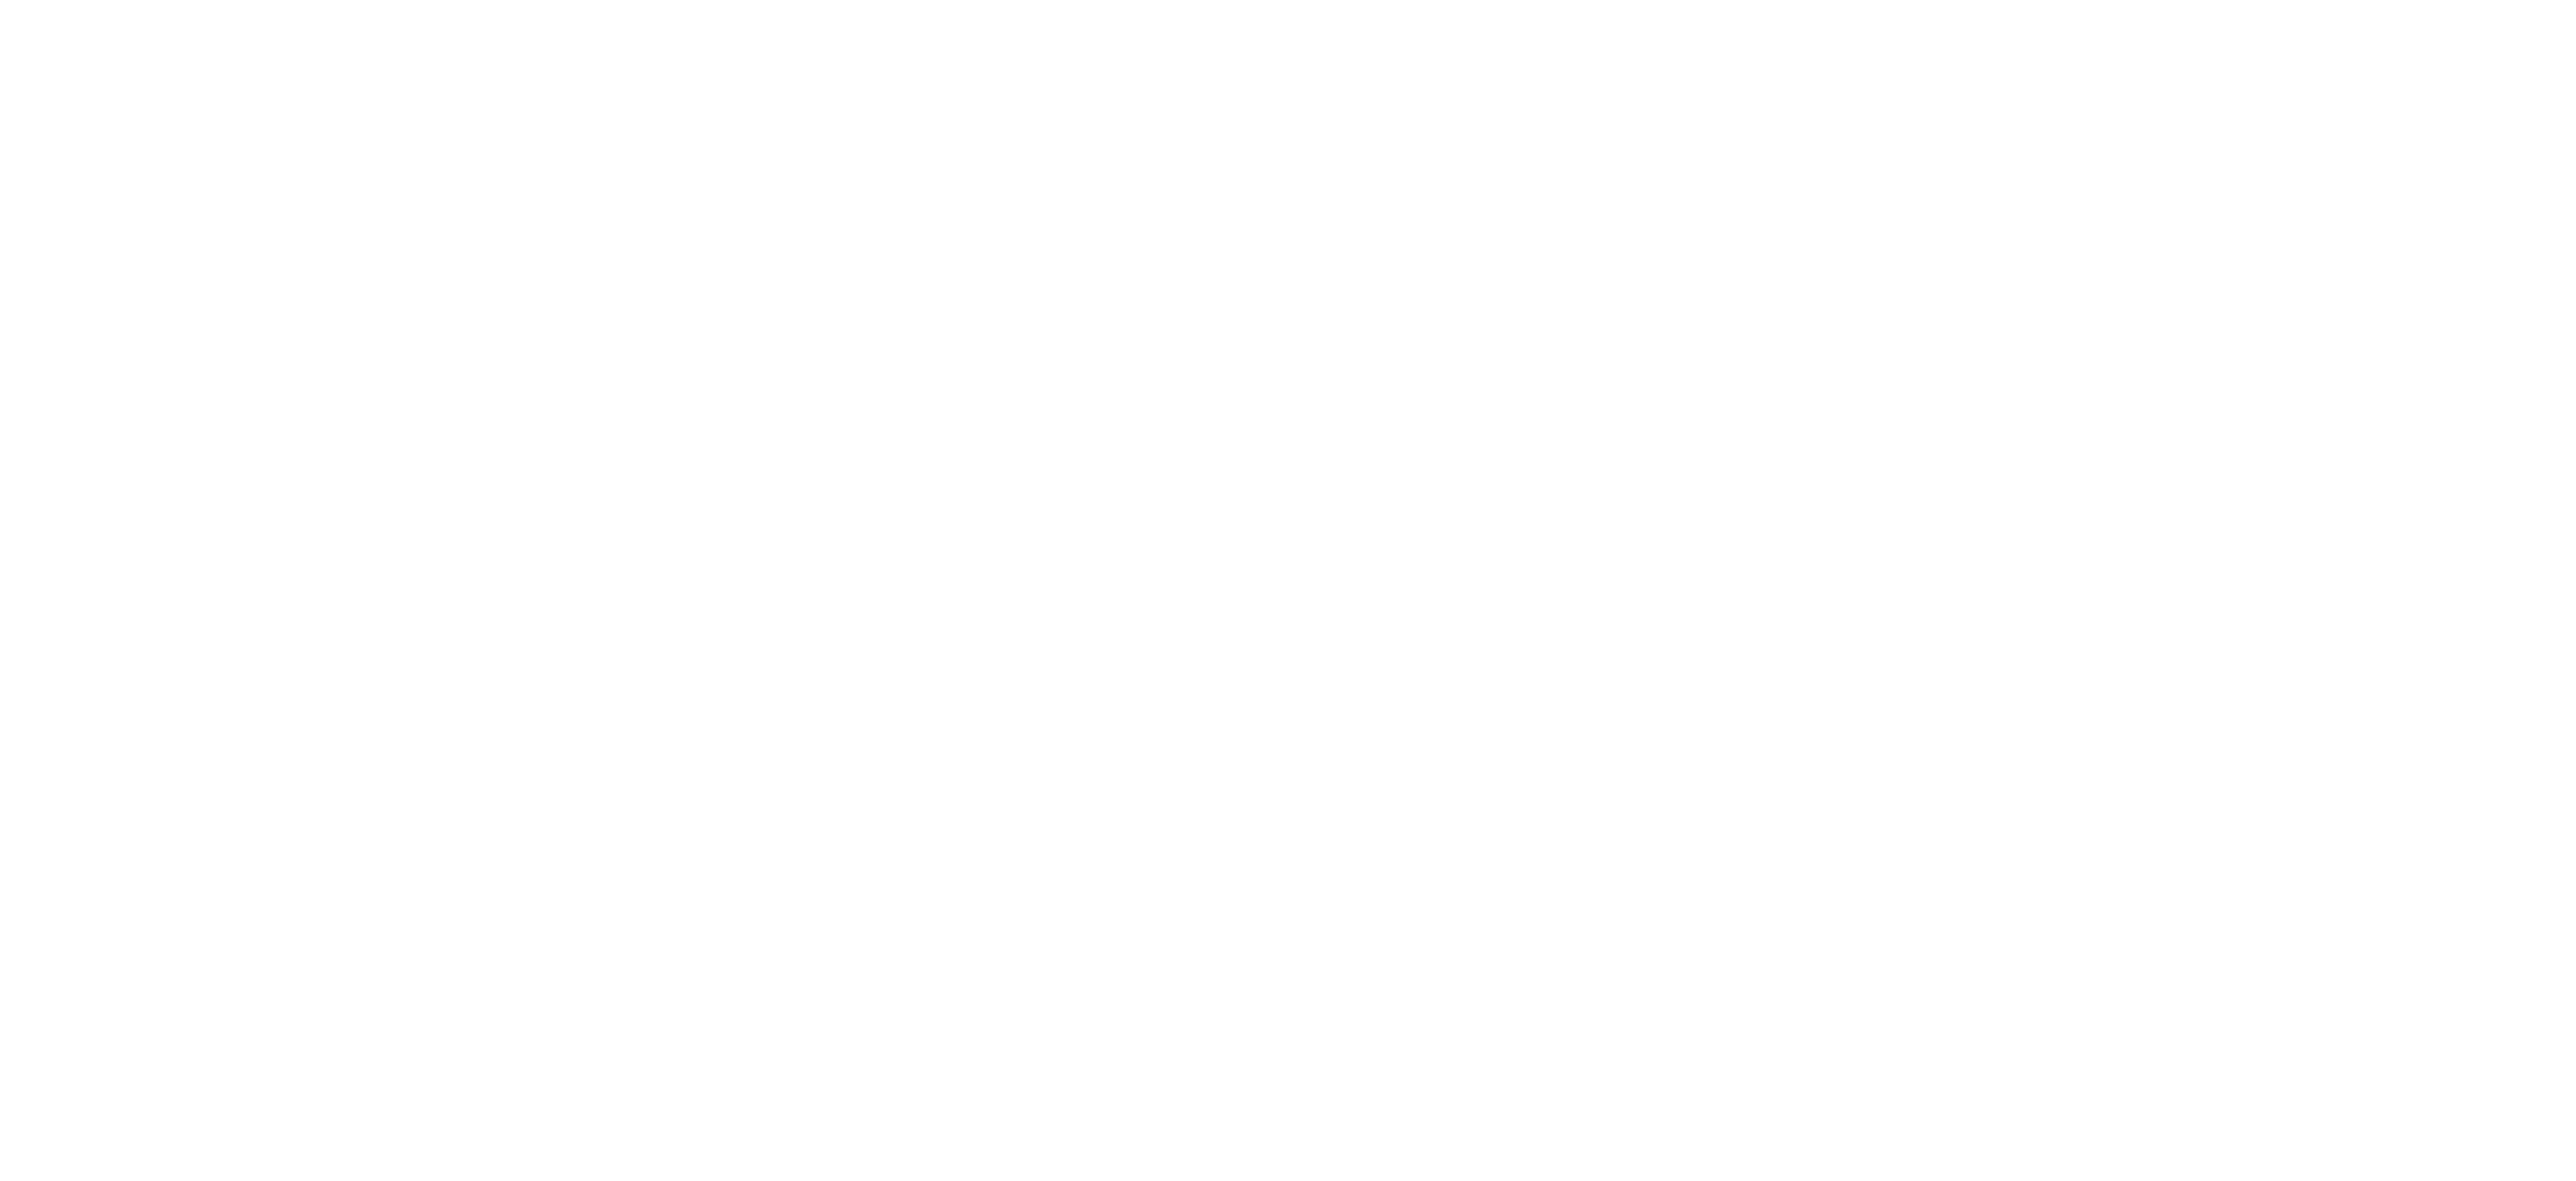 Future Talent text logo in white with transparent background.